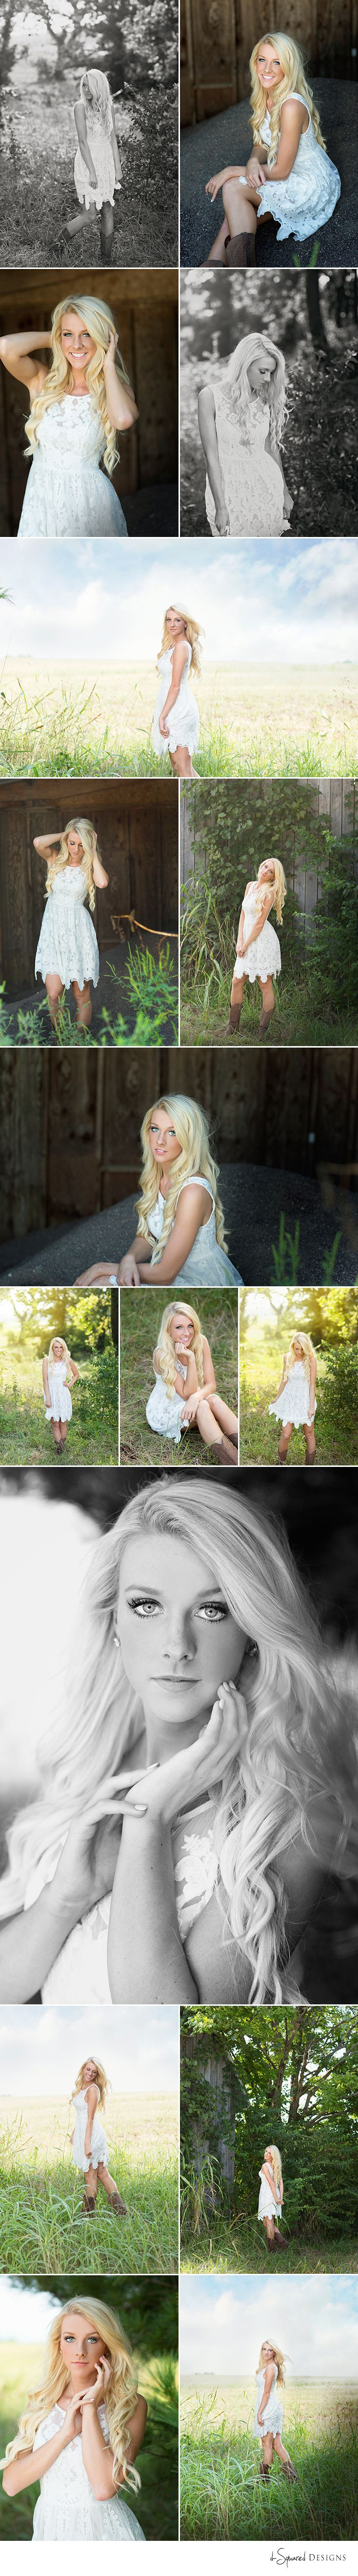 d-Squared Designs St. Louis, MO Senior Photography. Senior Photography. Country Senior Session. Rustic senior. Gorgeous blonde senior.